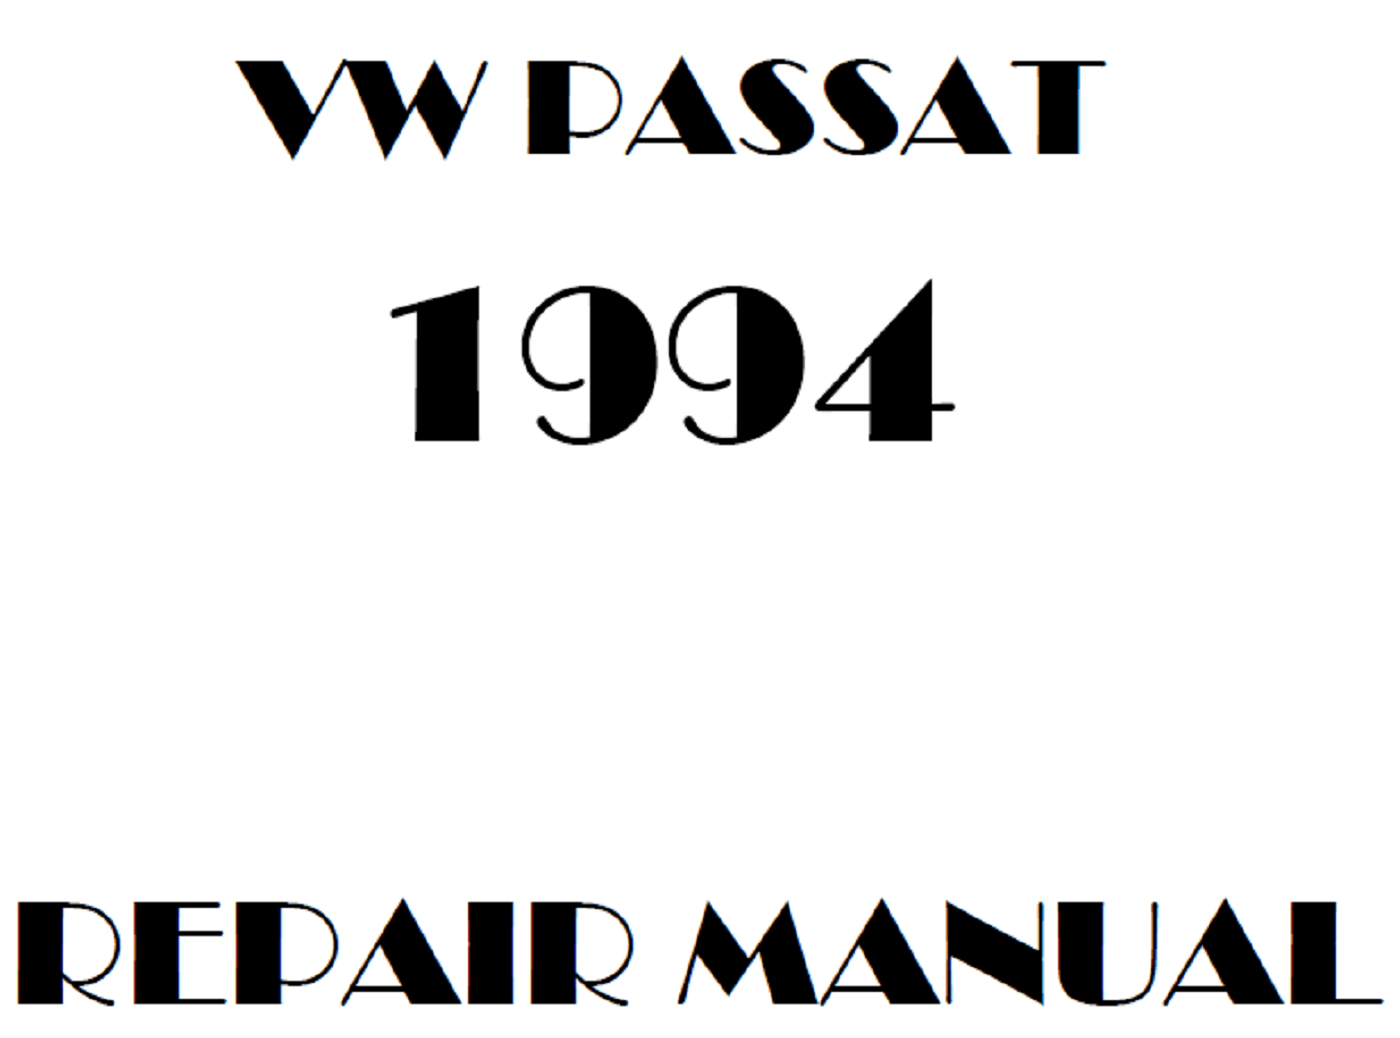 1994 Volkswagen Passat repair manual